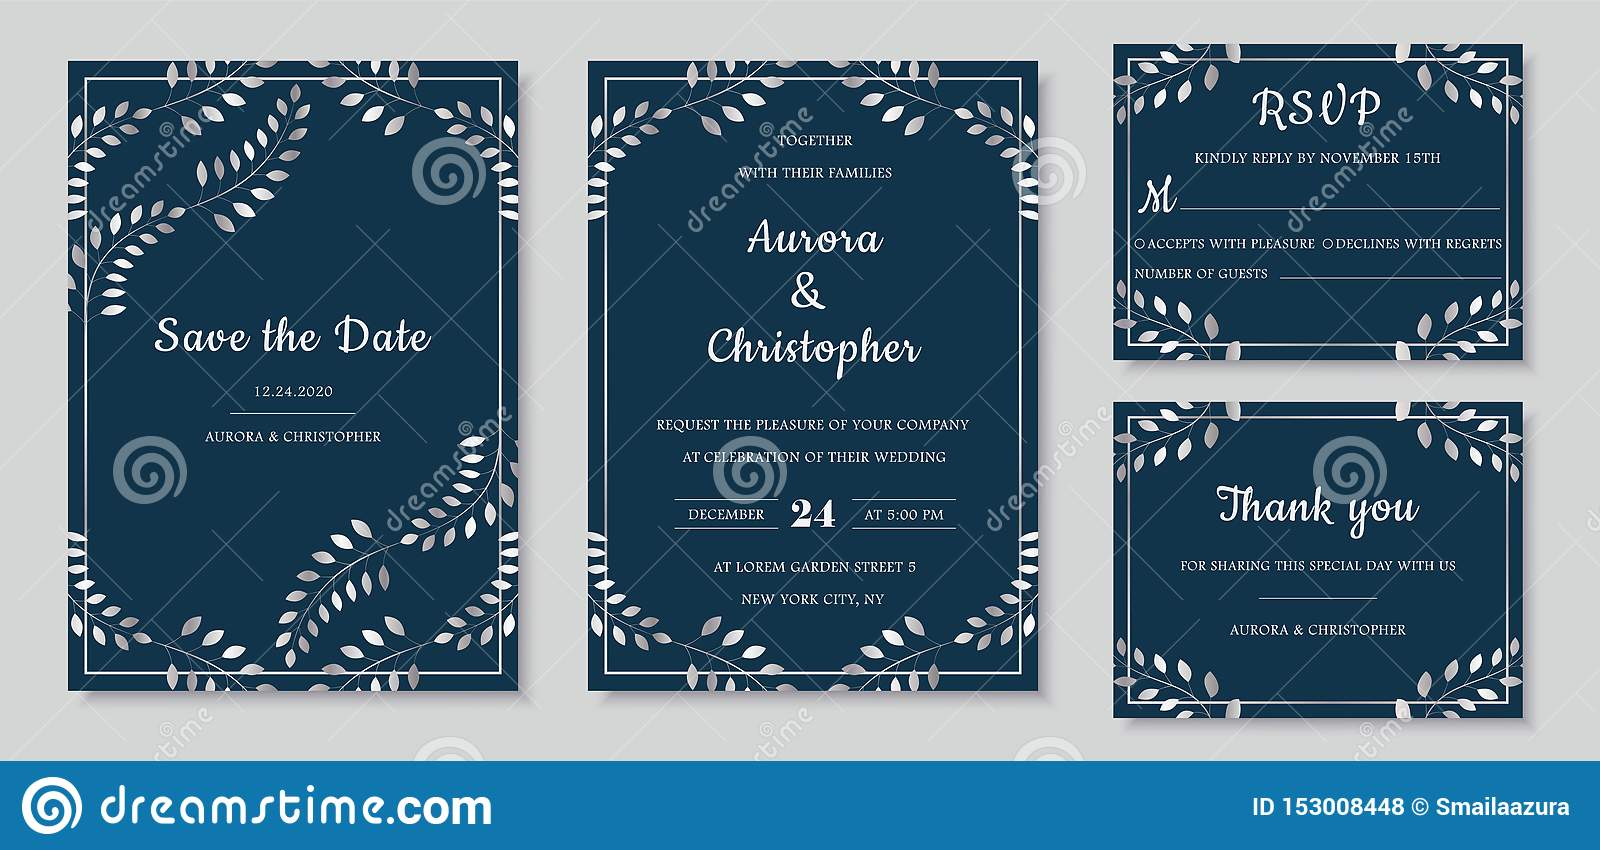 Elegant Wedding Invitations Set With Silver Floral Motives And Marine Blue  Background. Stock Vector - Illustration of modern, greenery: 153008448